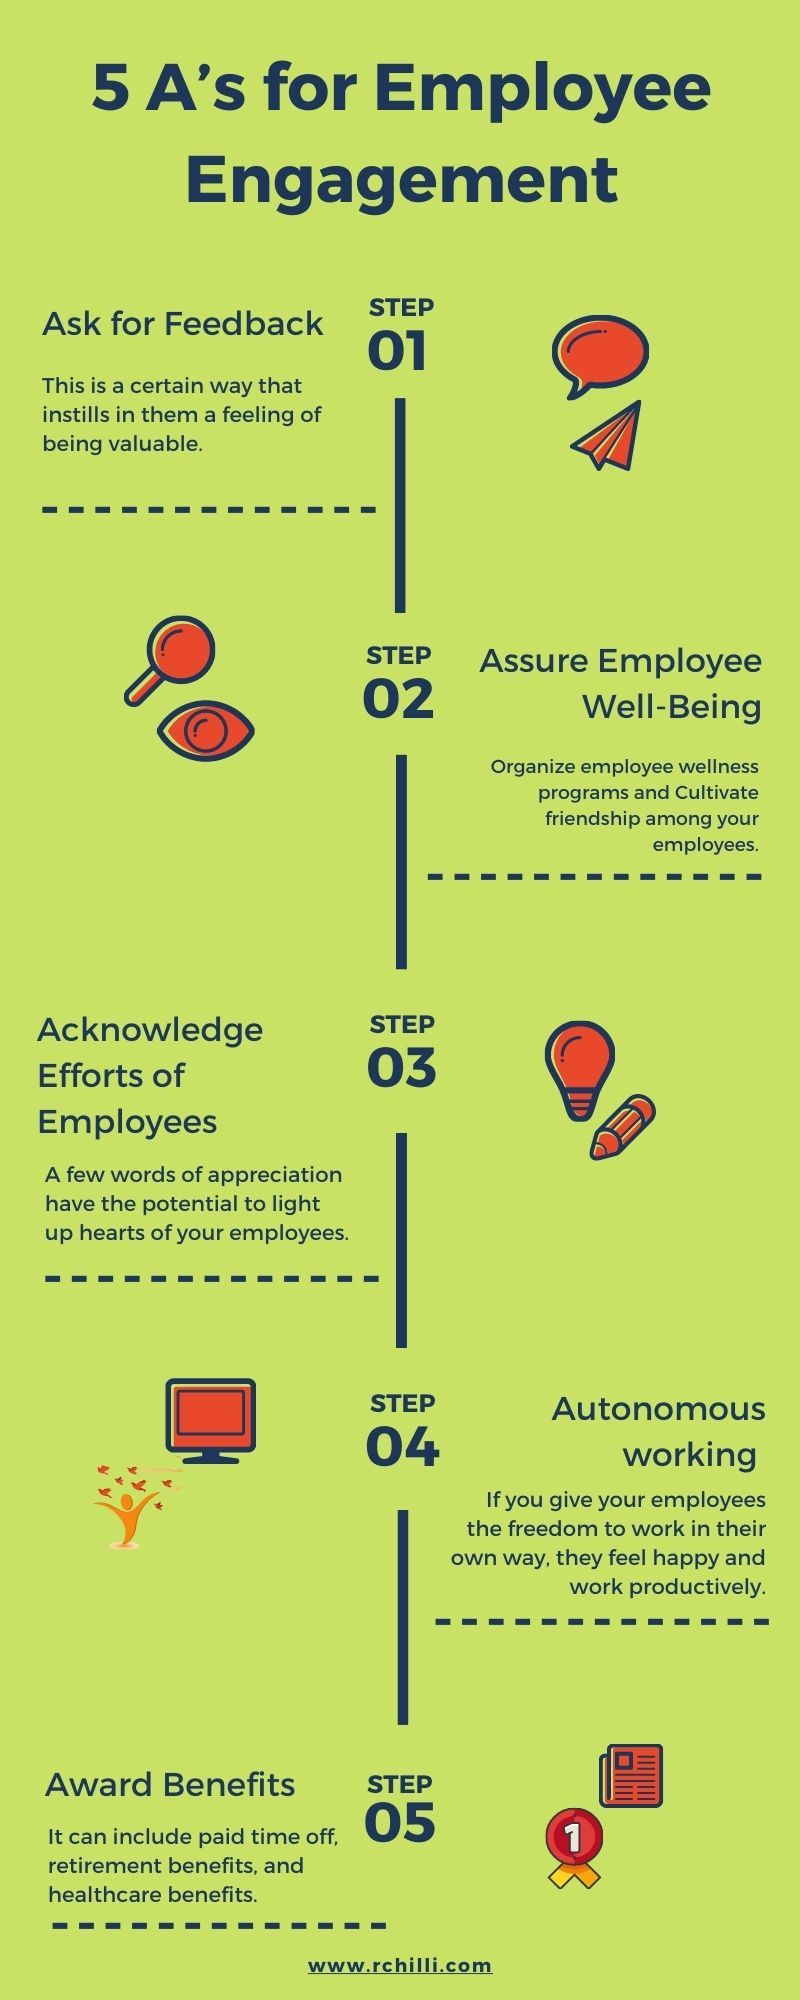 5 A's for employee engagement (2)